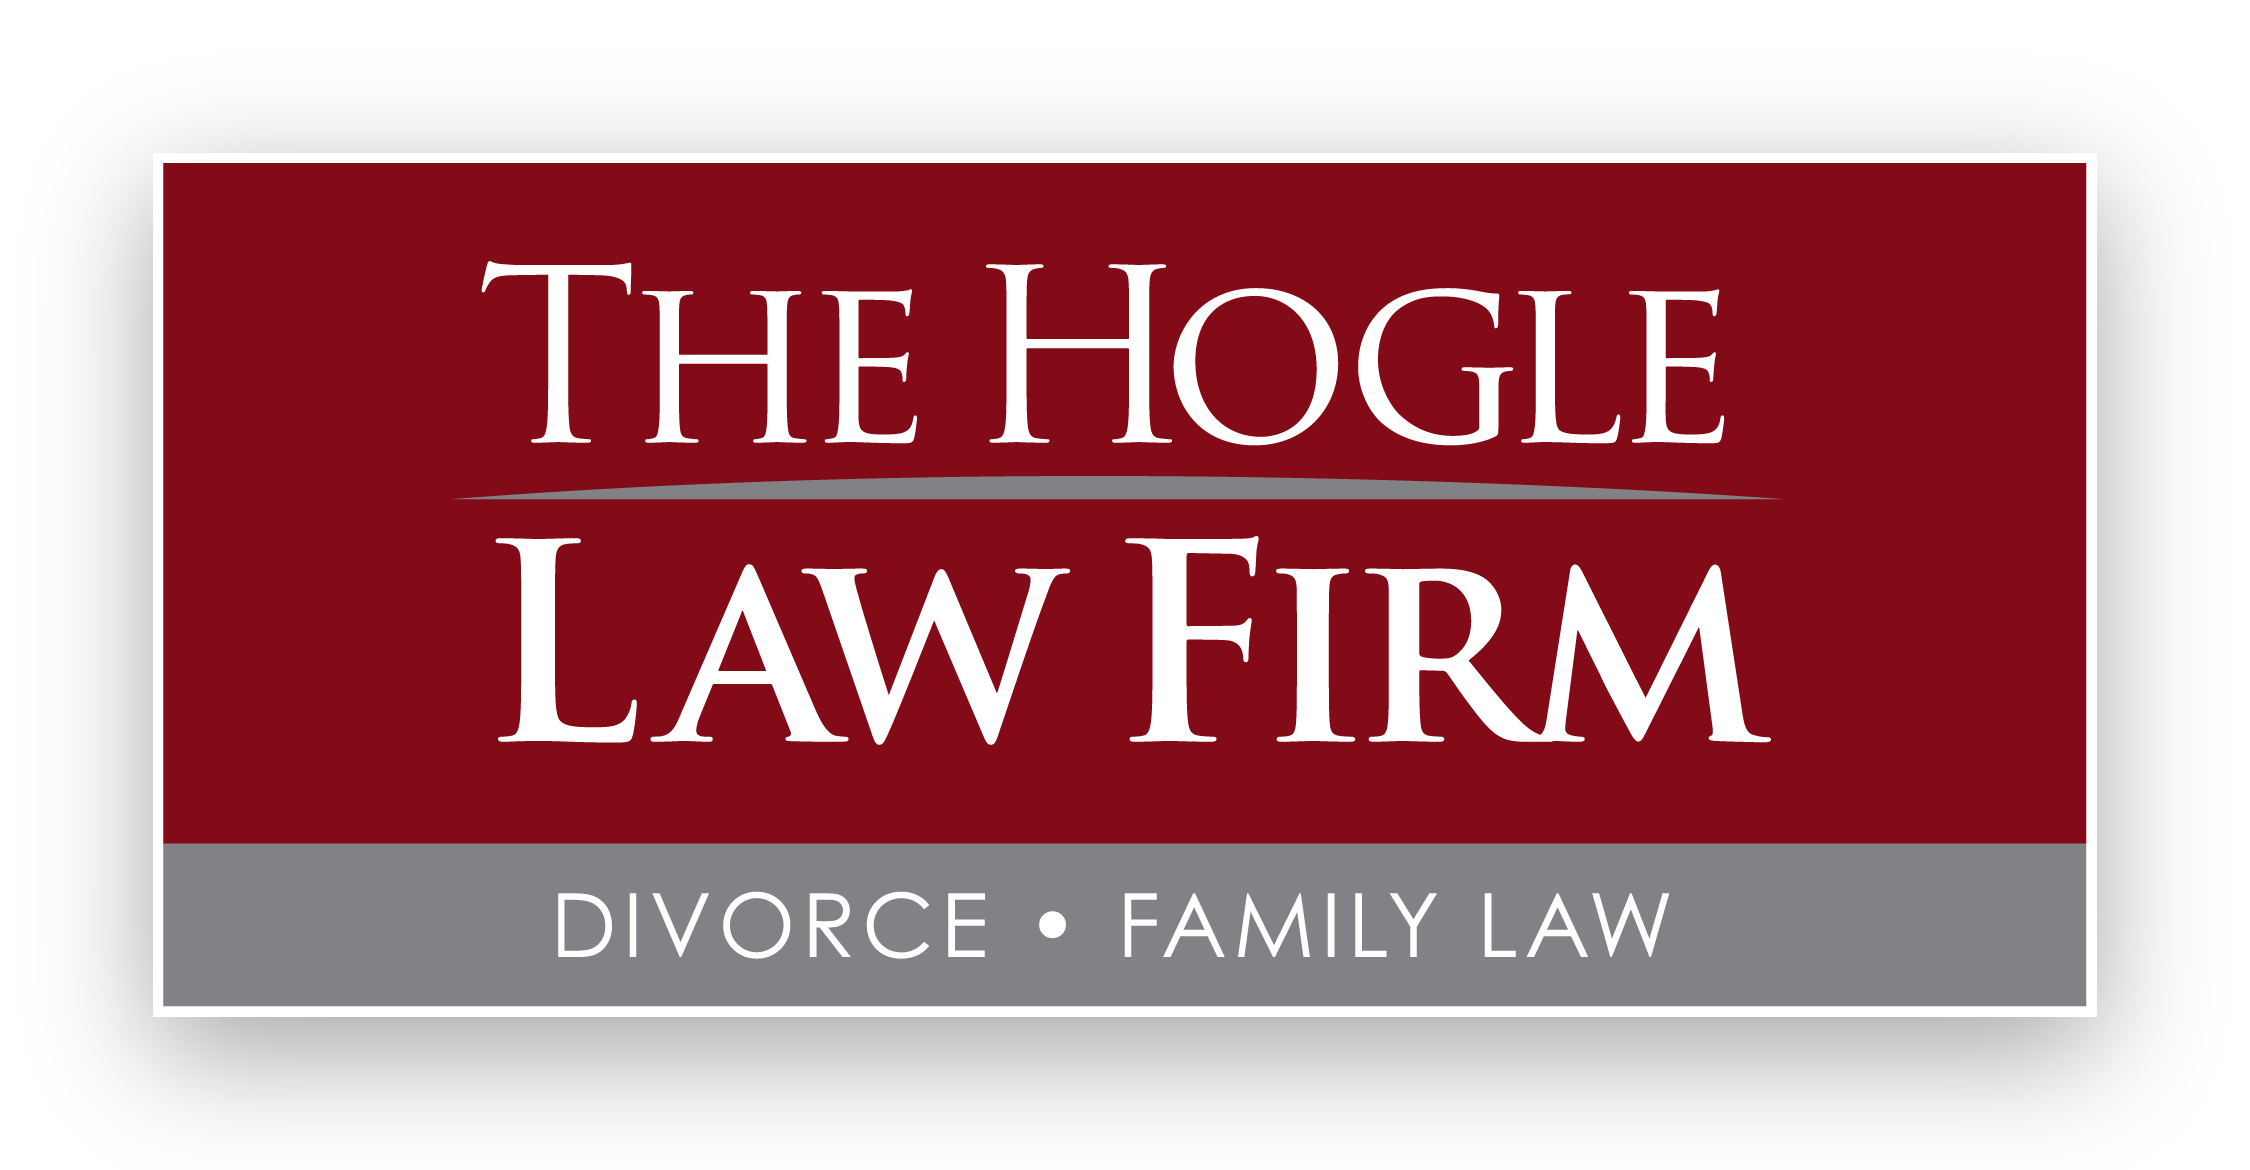 Hogle Family Law - Divorce Attornies in Mesa AZ